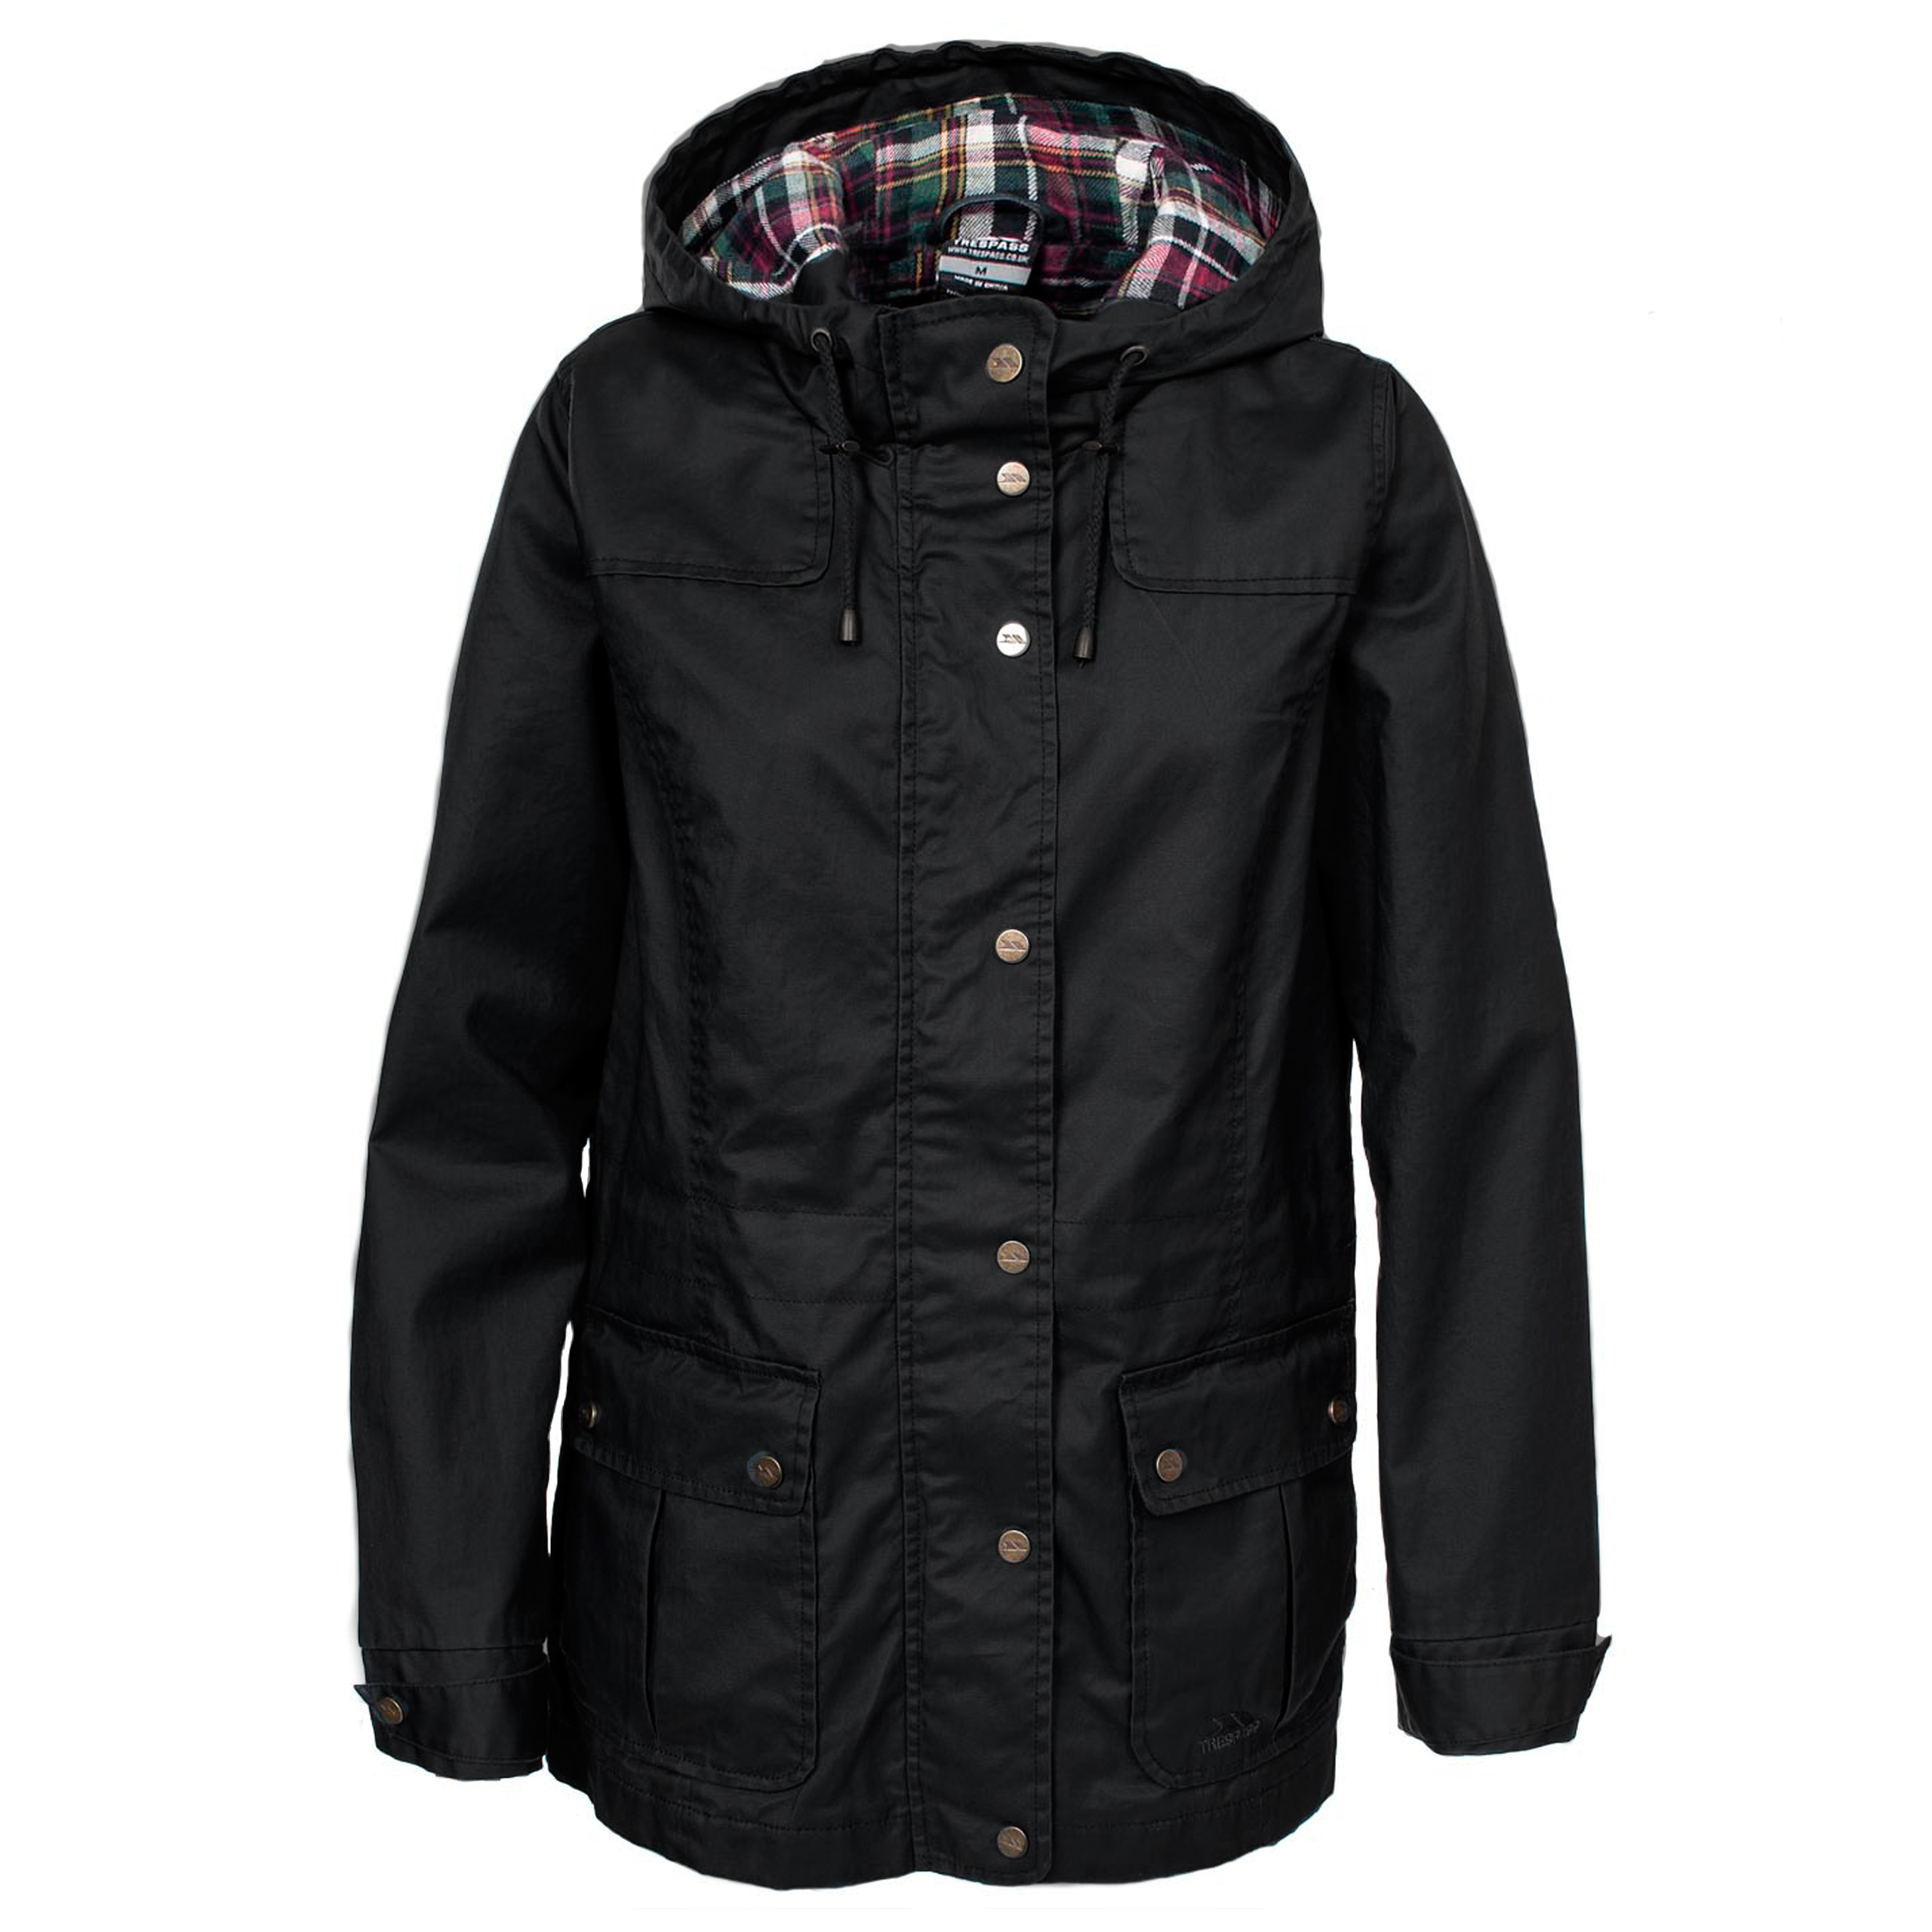 Casual womens jackets